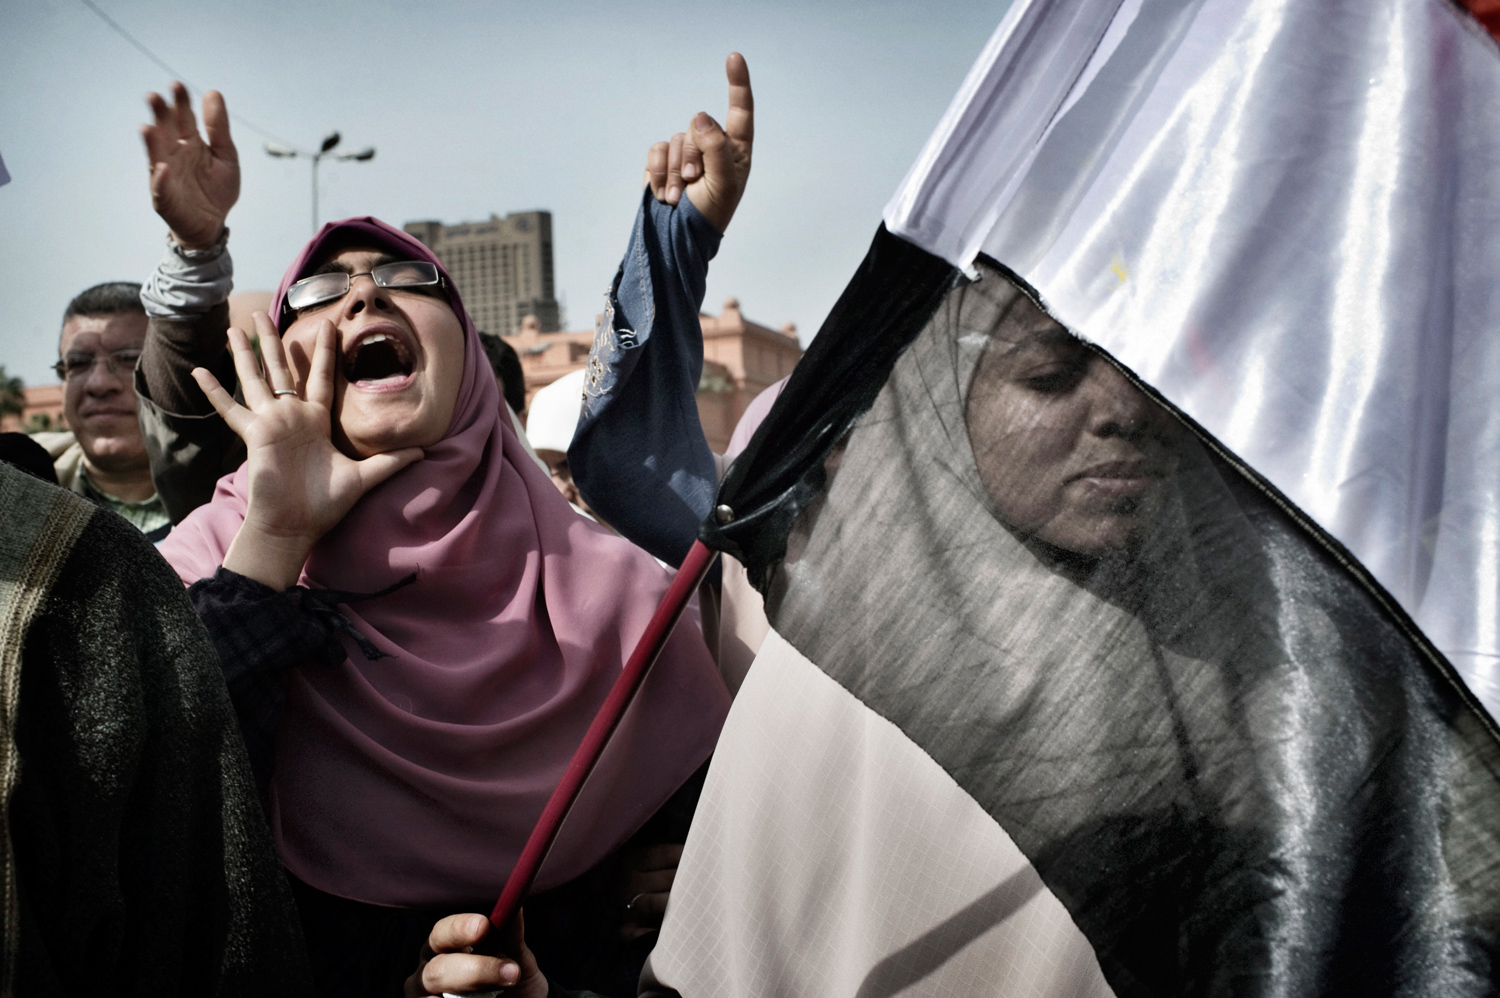 Cairo, Egypt —February 4, 2011                   After repelling pro-regime attacks in two days of bloody street fights, tens of thousands of anti-Mubarak protesters packed central Cairo, waving flags and singing the national anthem.